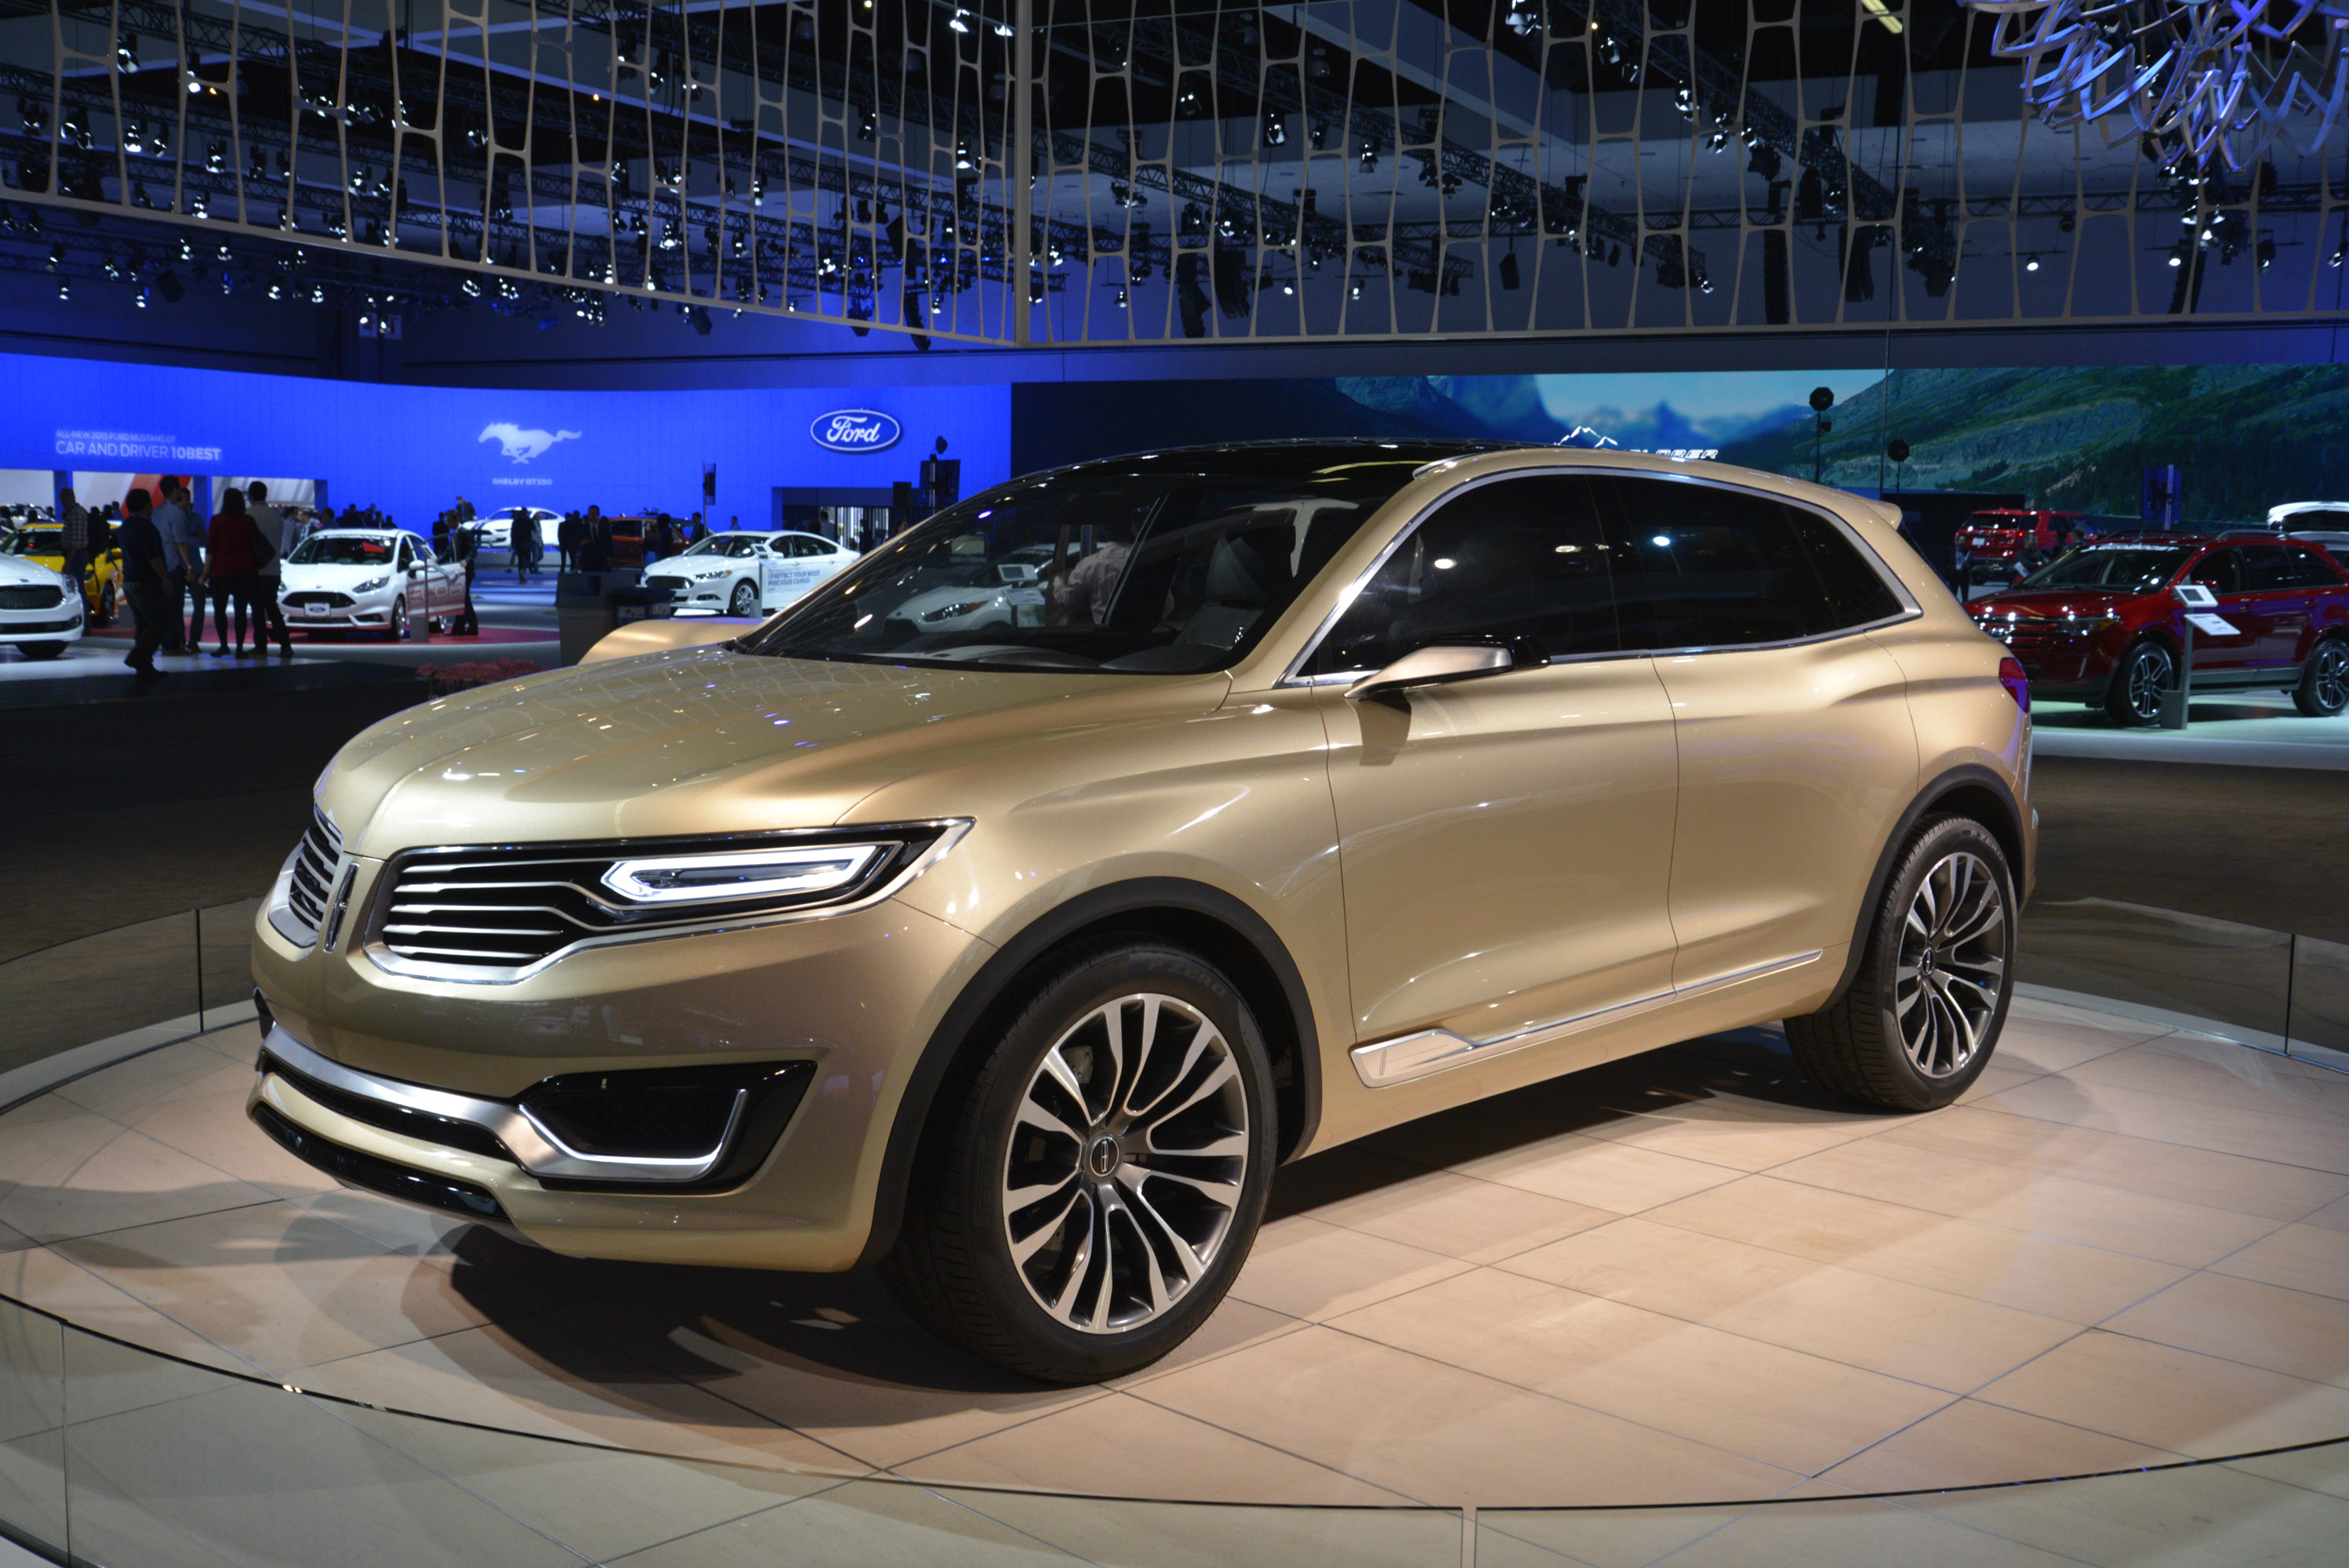 https://www.automobilesreview.com/gallery/lincoln-mkx-los-angeles-2014/lincoln-mkx-los-angeles-2014-02.jpg